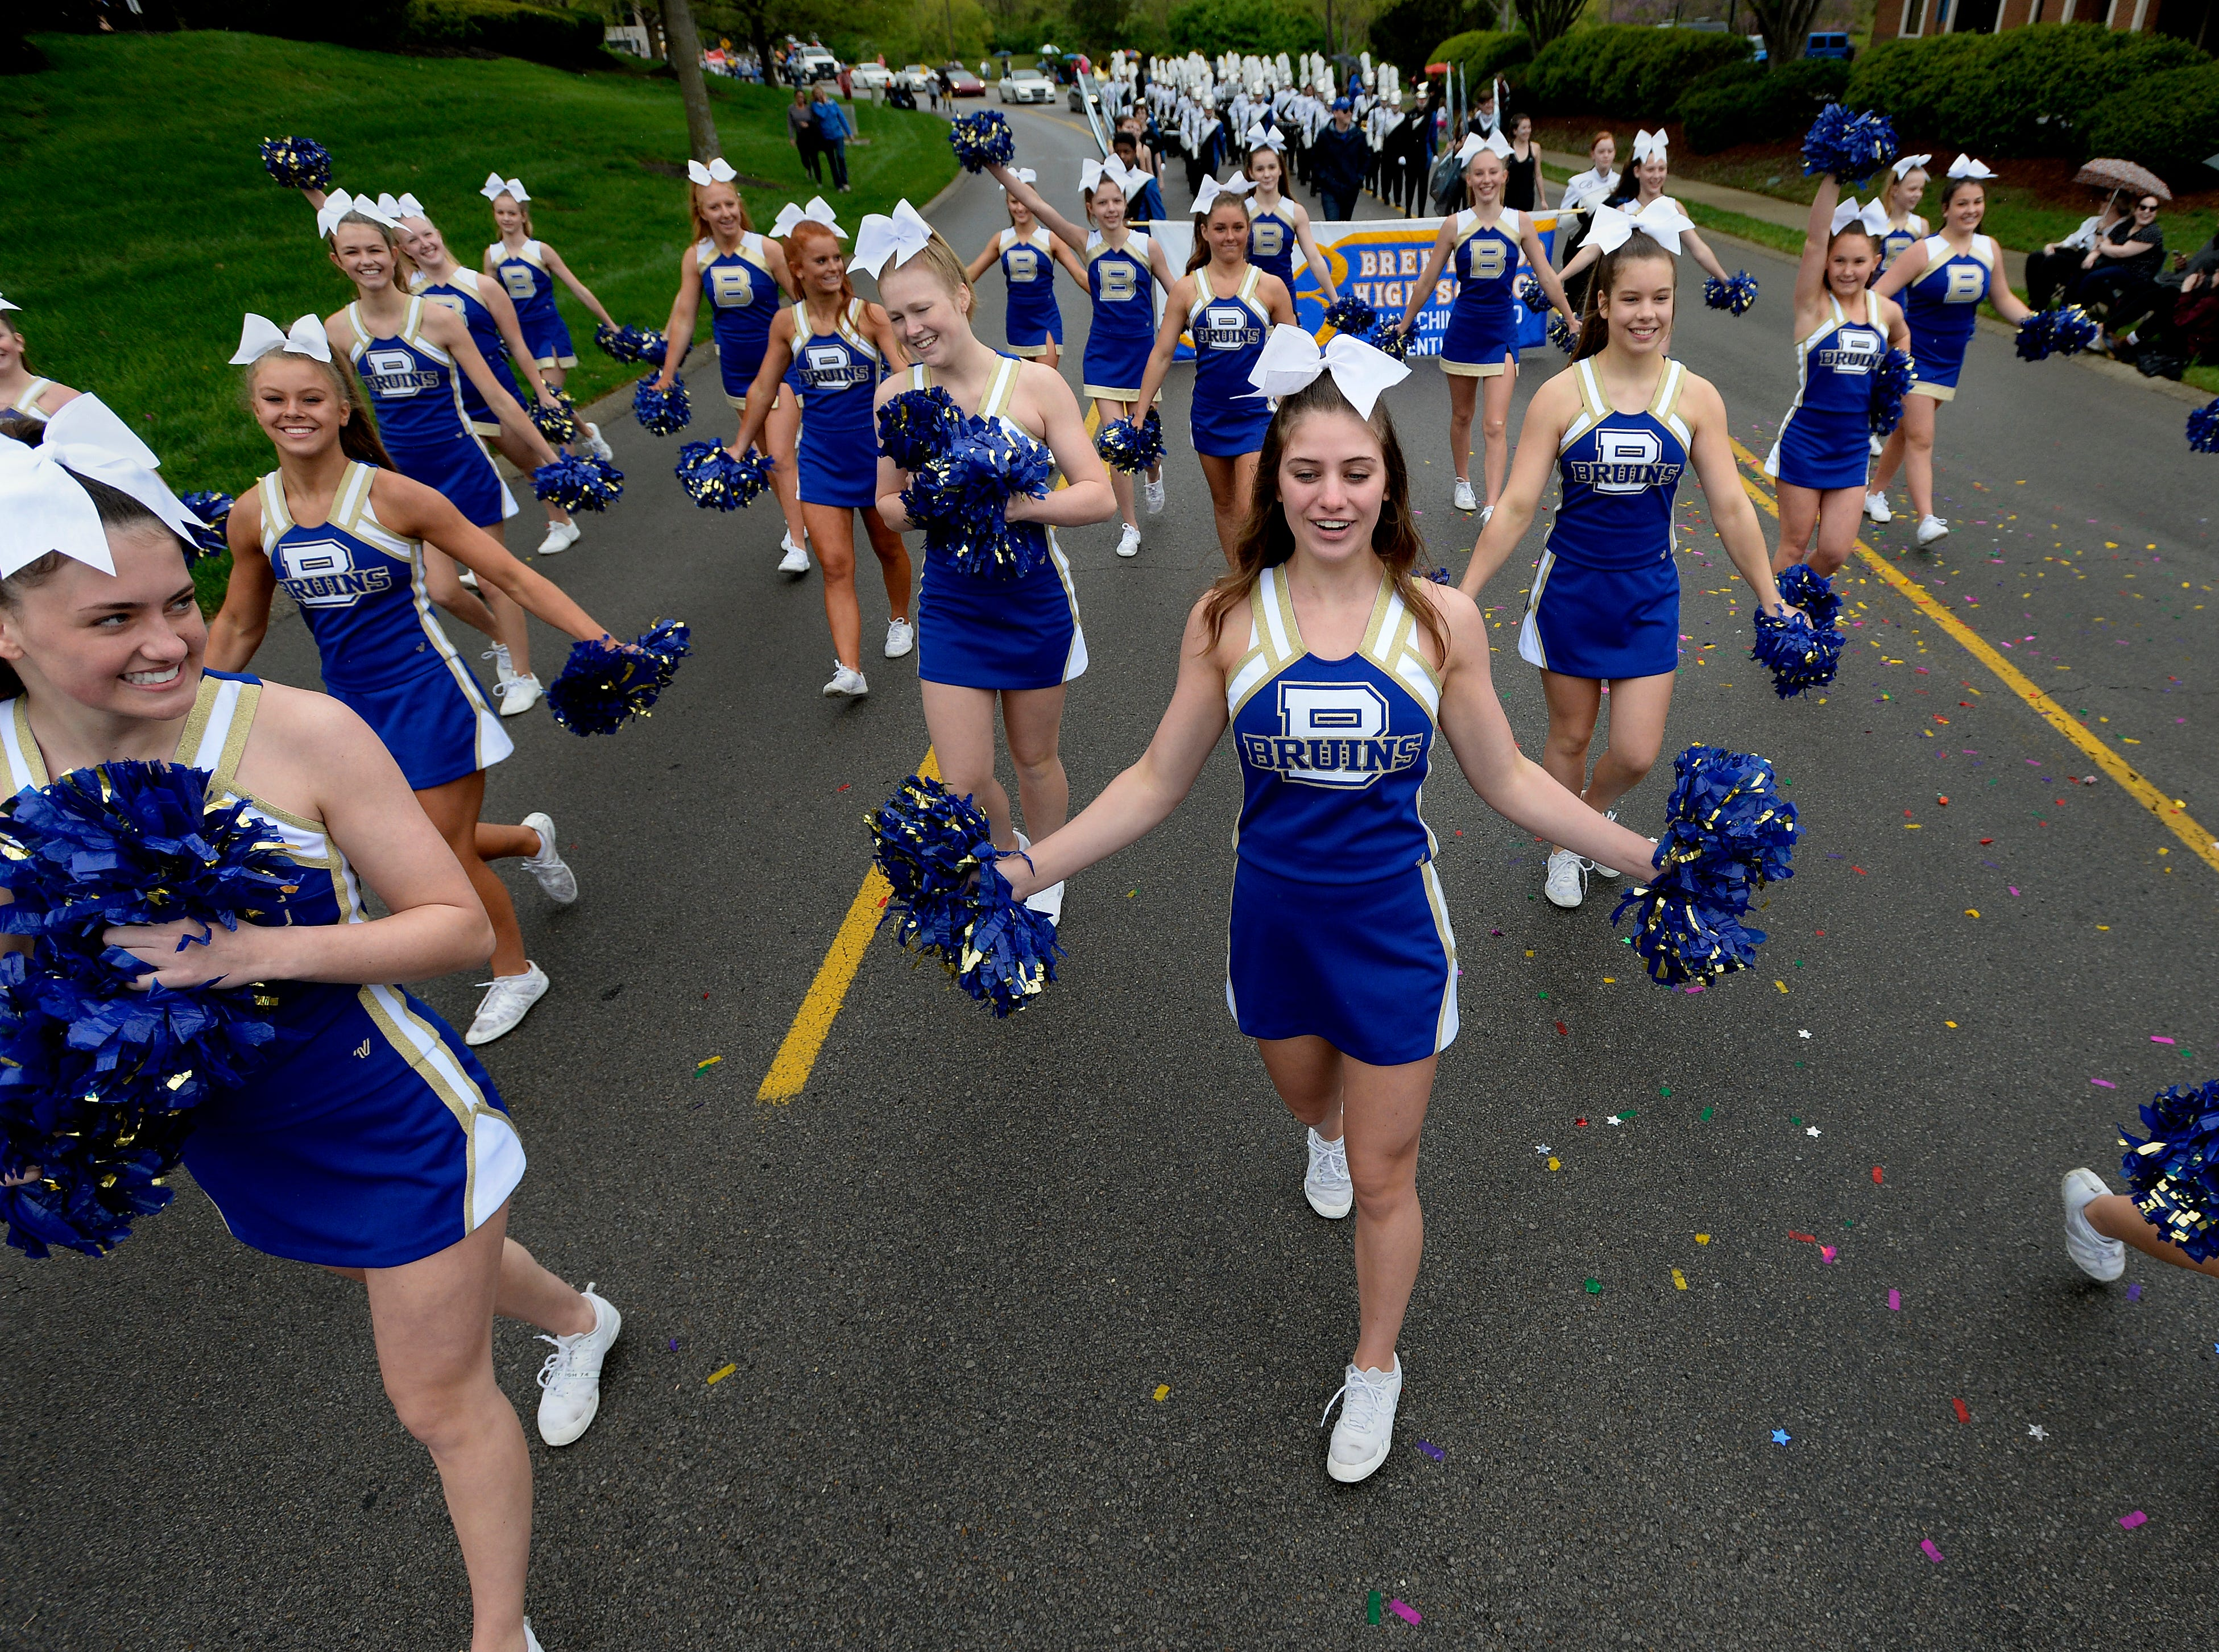 """The Brentwood High School cheerleaders and marching band perform during Brentwood's """"A Golden Gallop"""" parade celebrating its 50th year as a community on Saturday, April 13, 2019, in Brentwood, Tenn."""